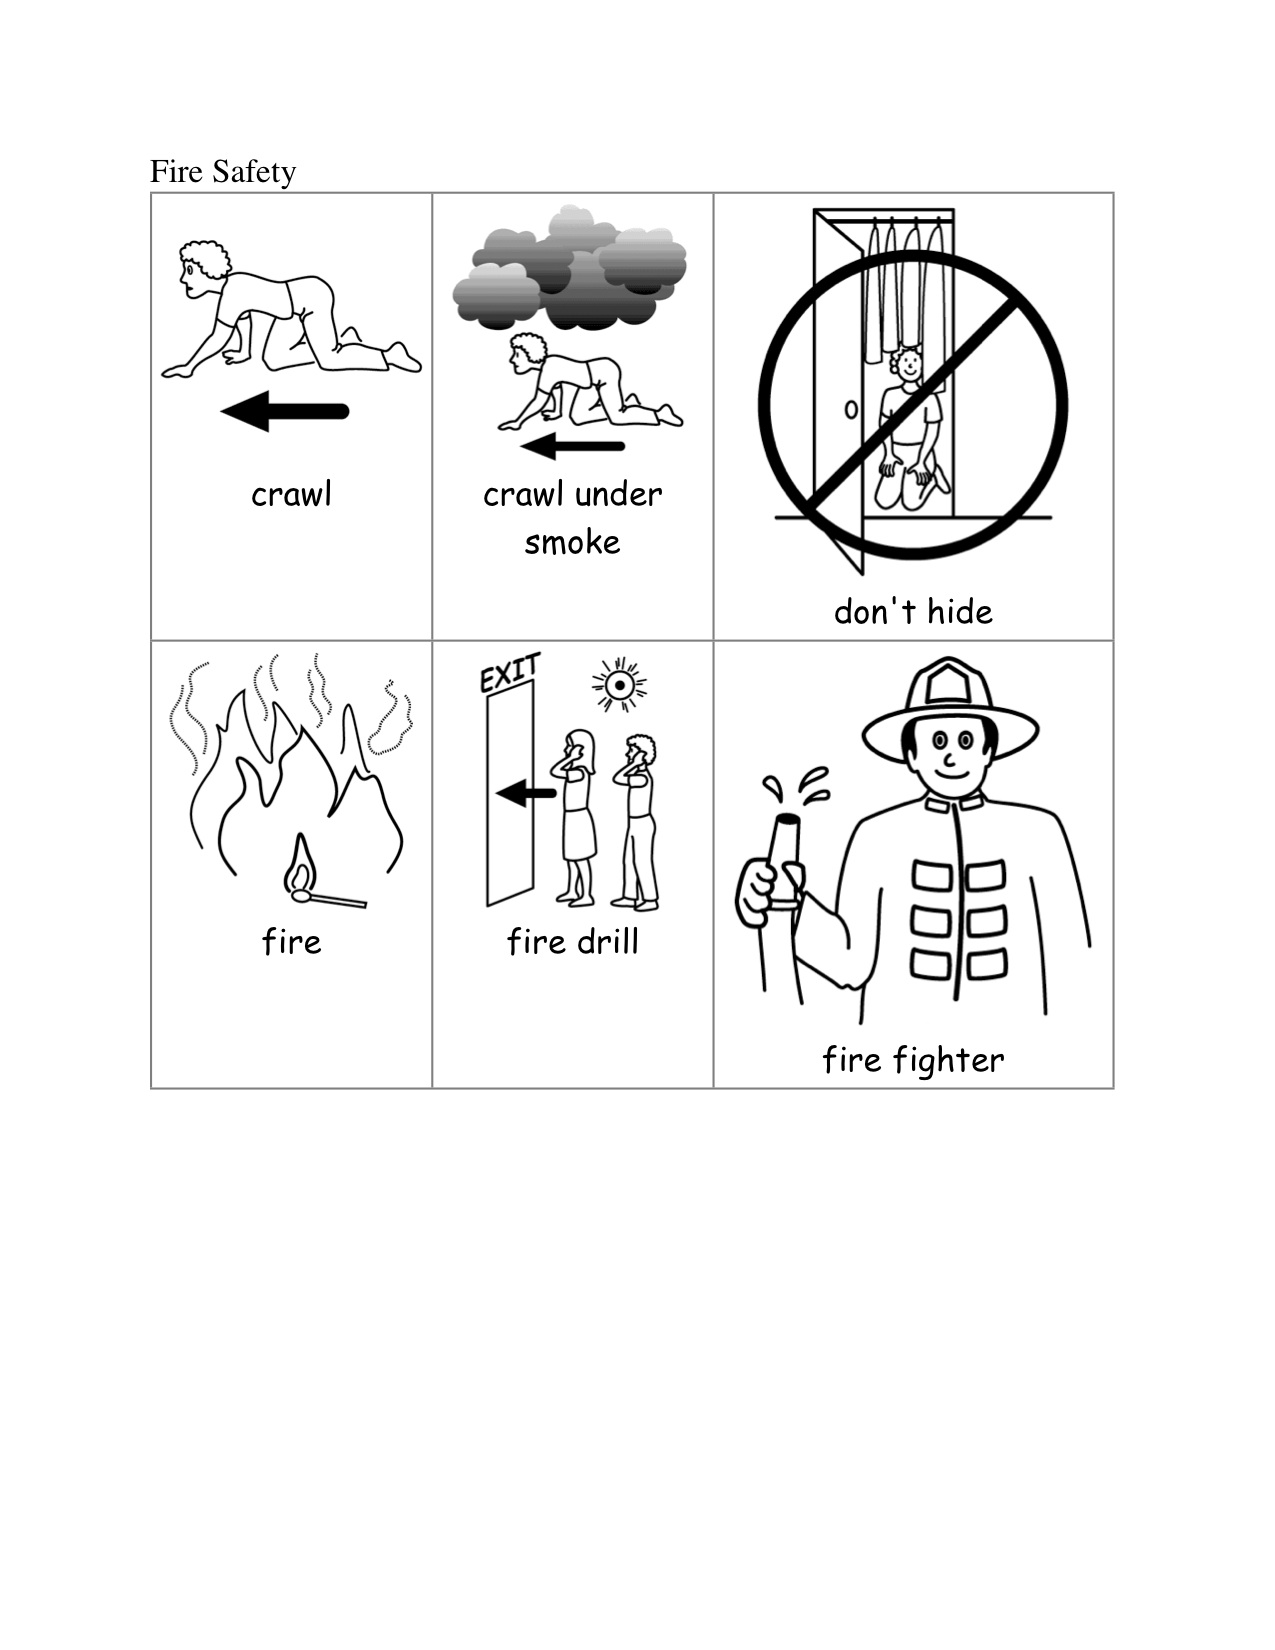 {fire safety worksheets for preschoolers Termolak – Kindergarten Fire Safety Worksheets